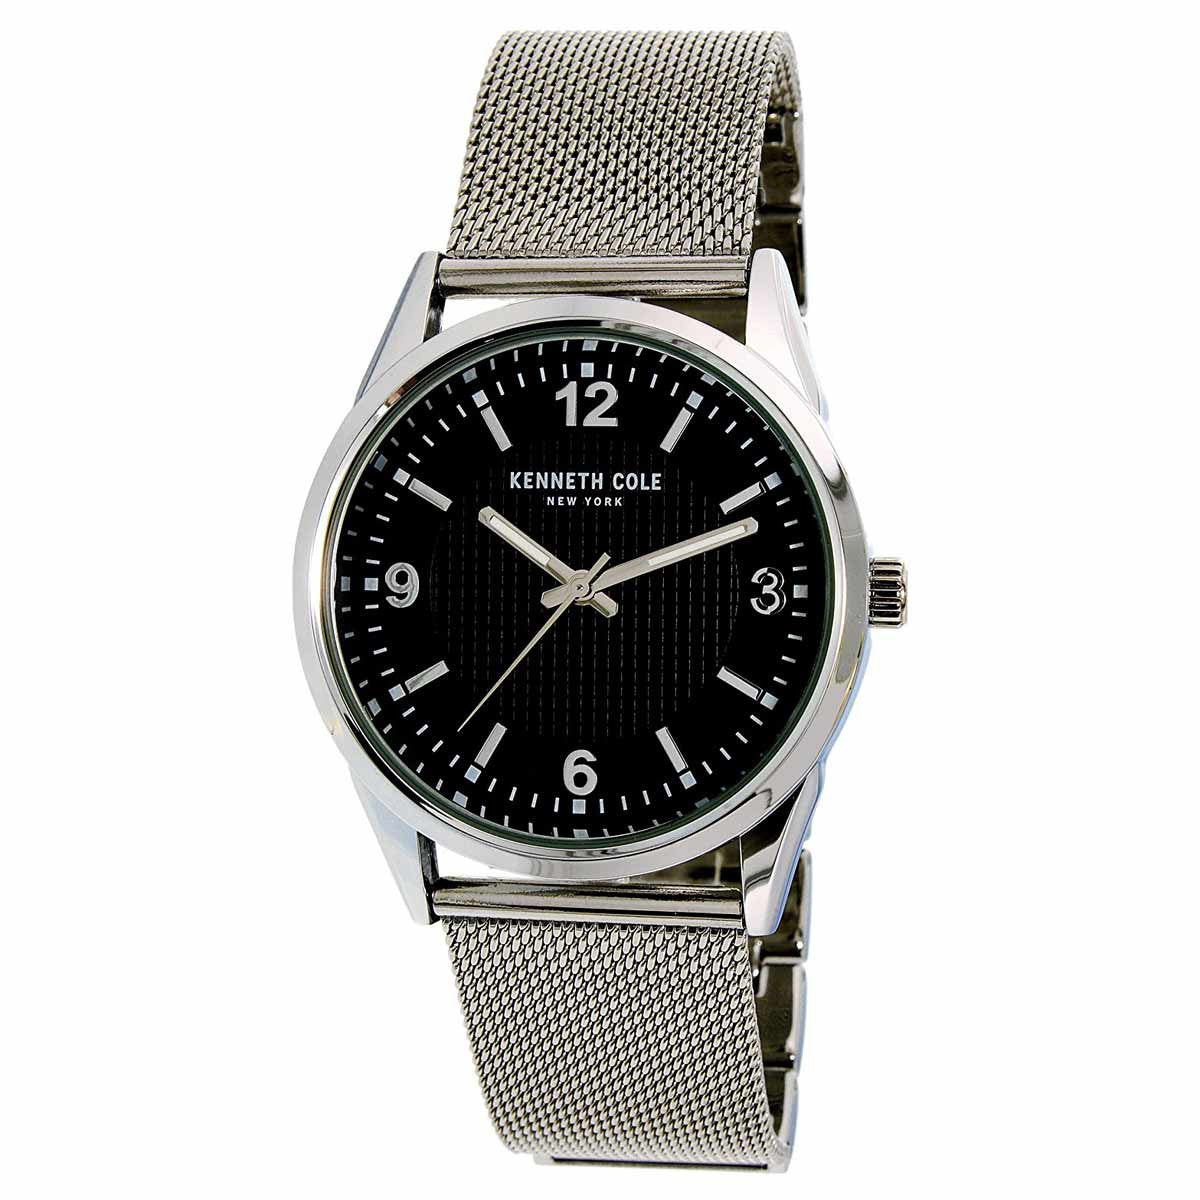 kenneth cole watches on up to 45% off discount watch store kenneth cole 10024820 men s classic quartz black dial stainless steel mesh bracelet watch